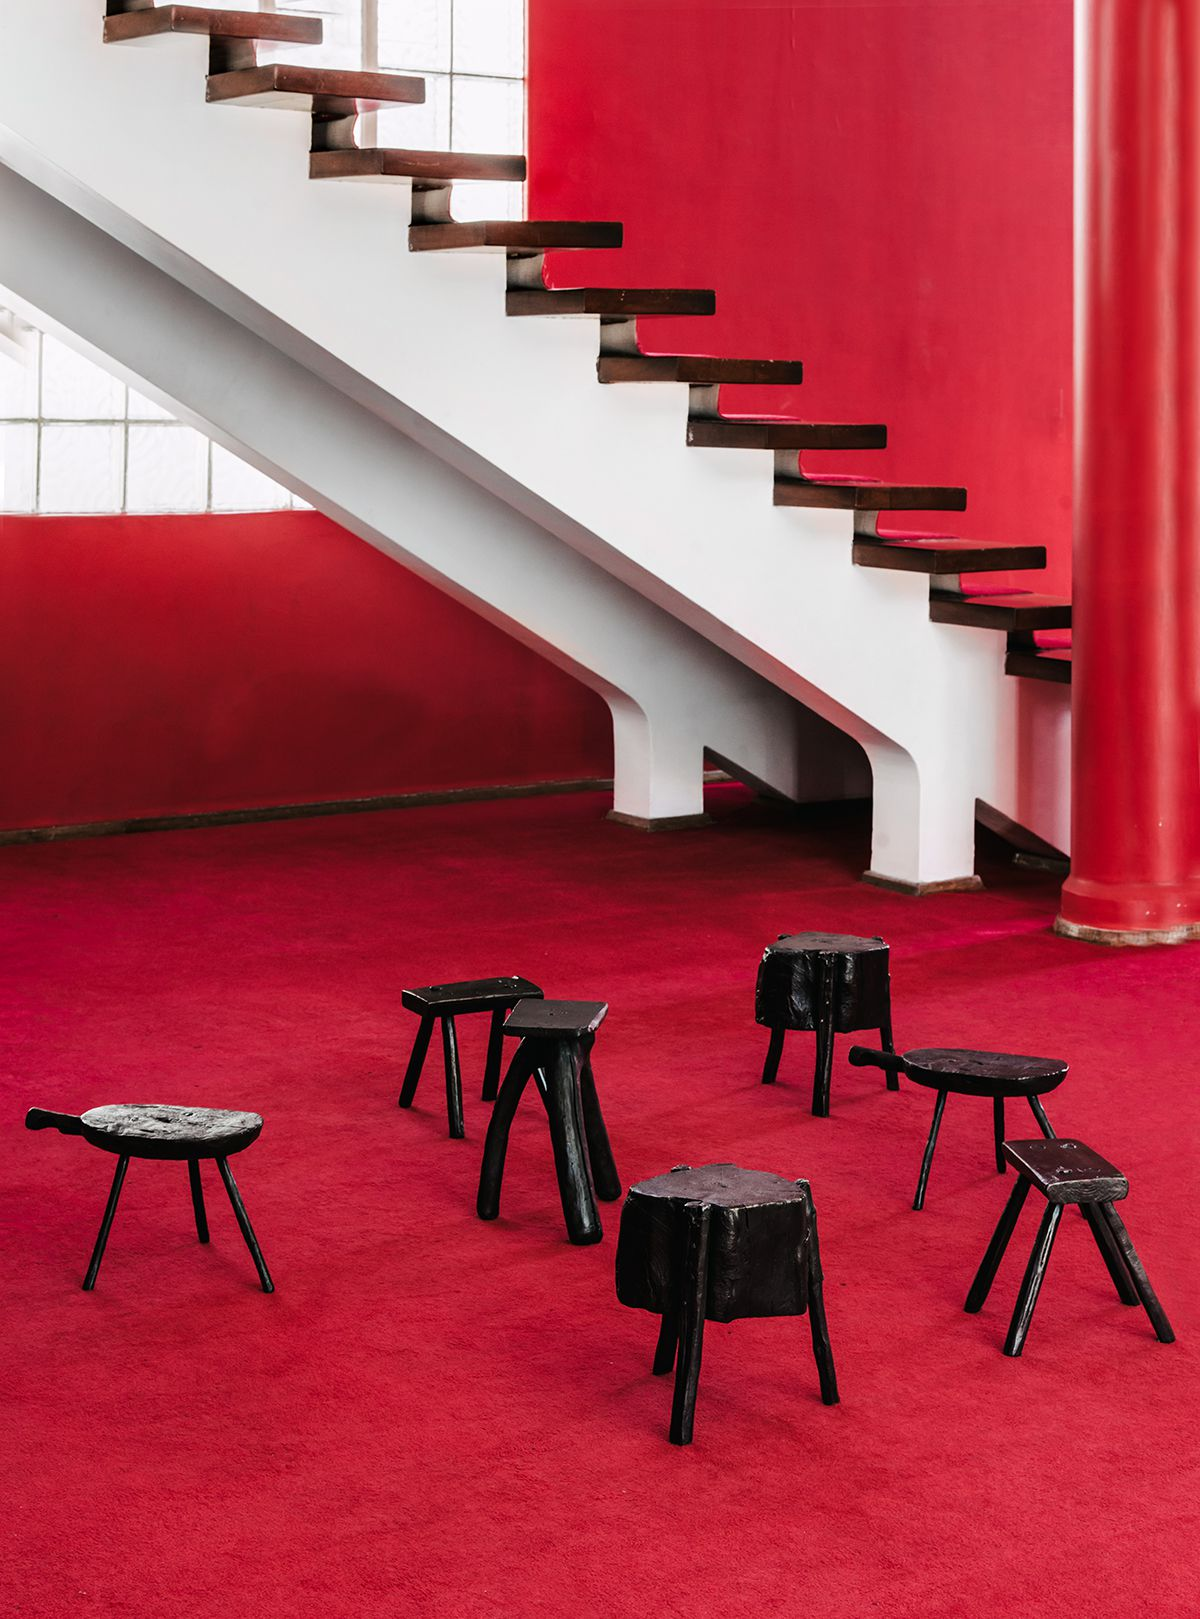 A room with red walls and red floors. A group of black stools is on the floor. There is a white staircase with black steps against one of the walls.